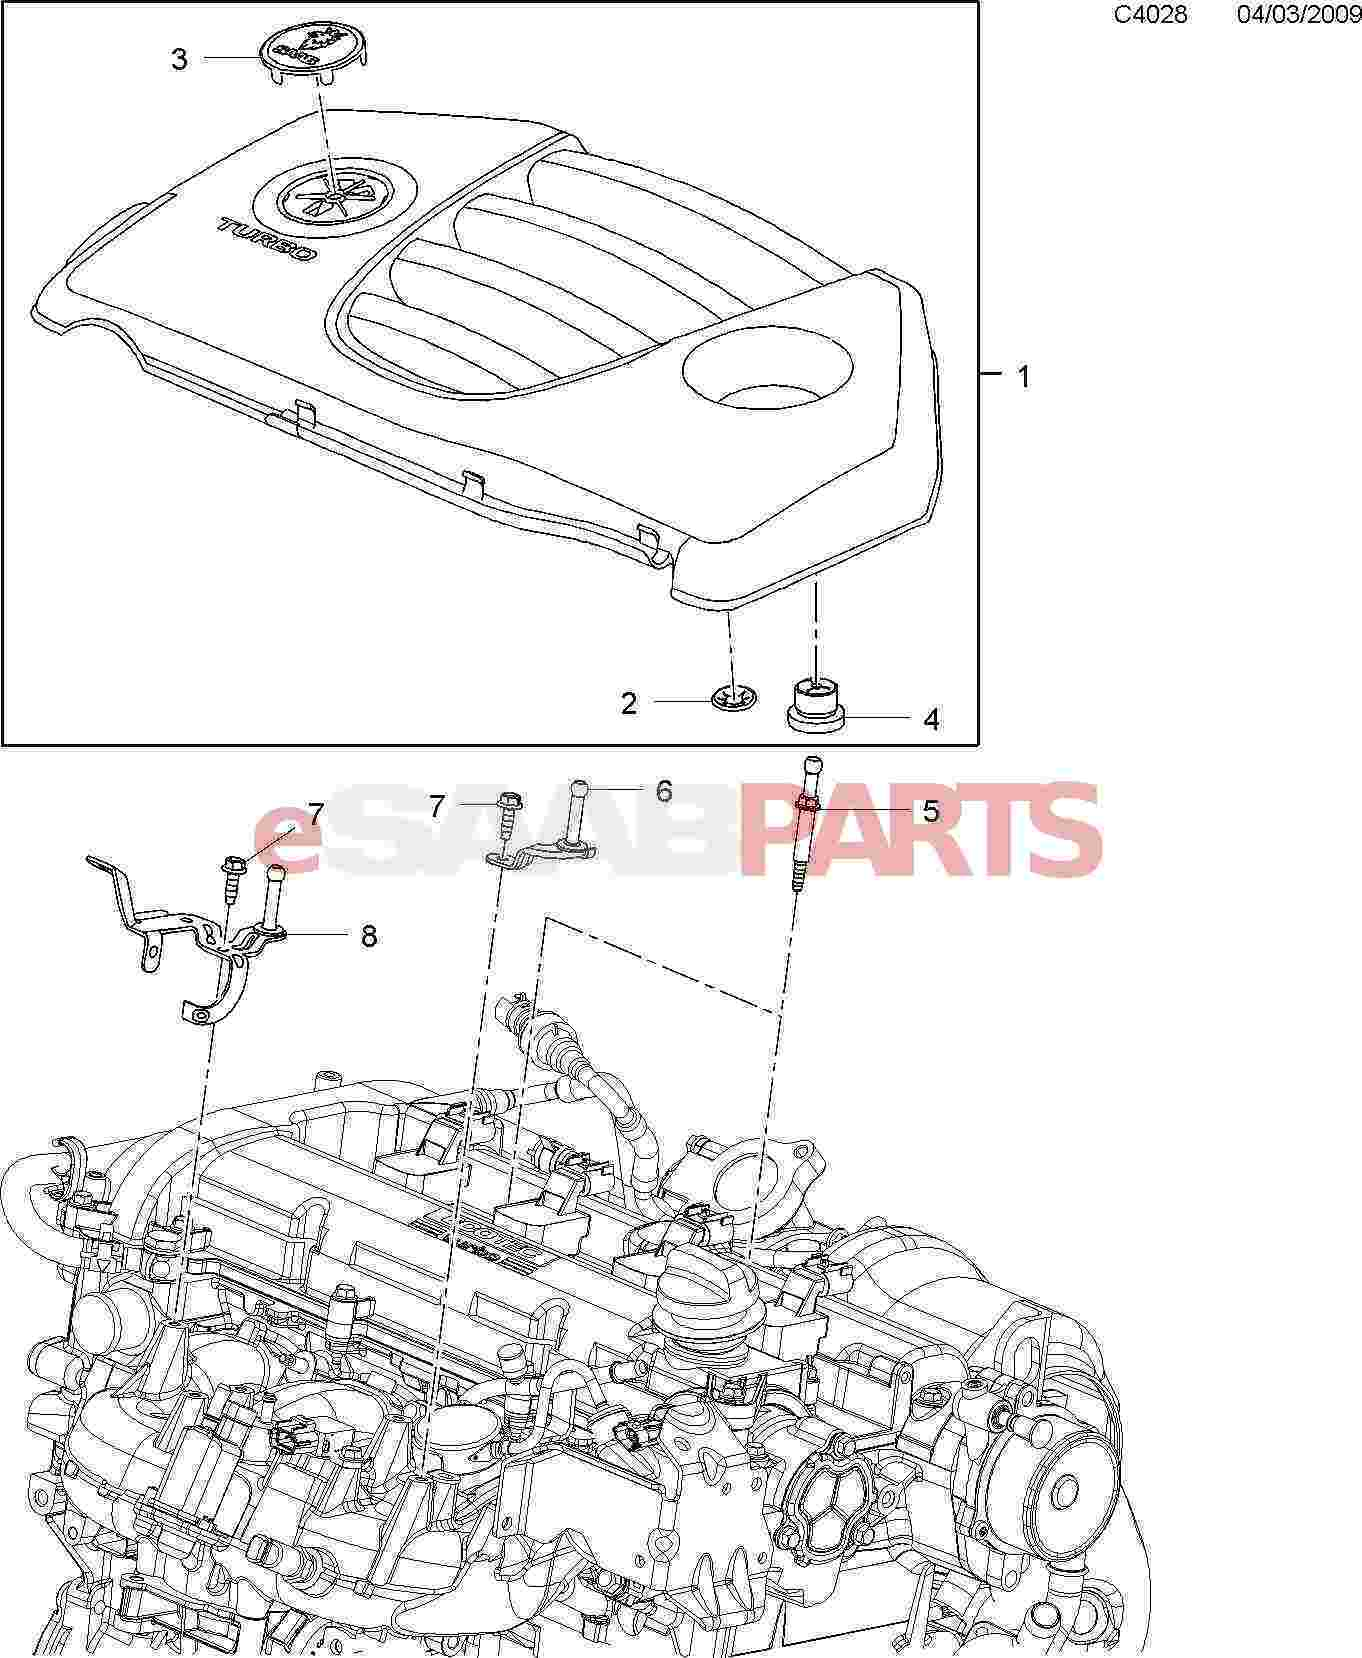 saab 9 3 engine bay diagram